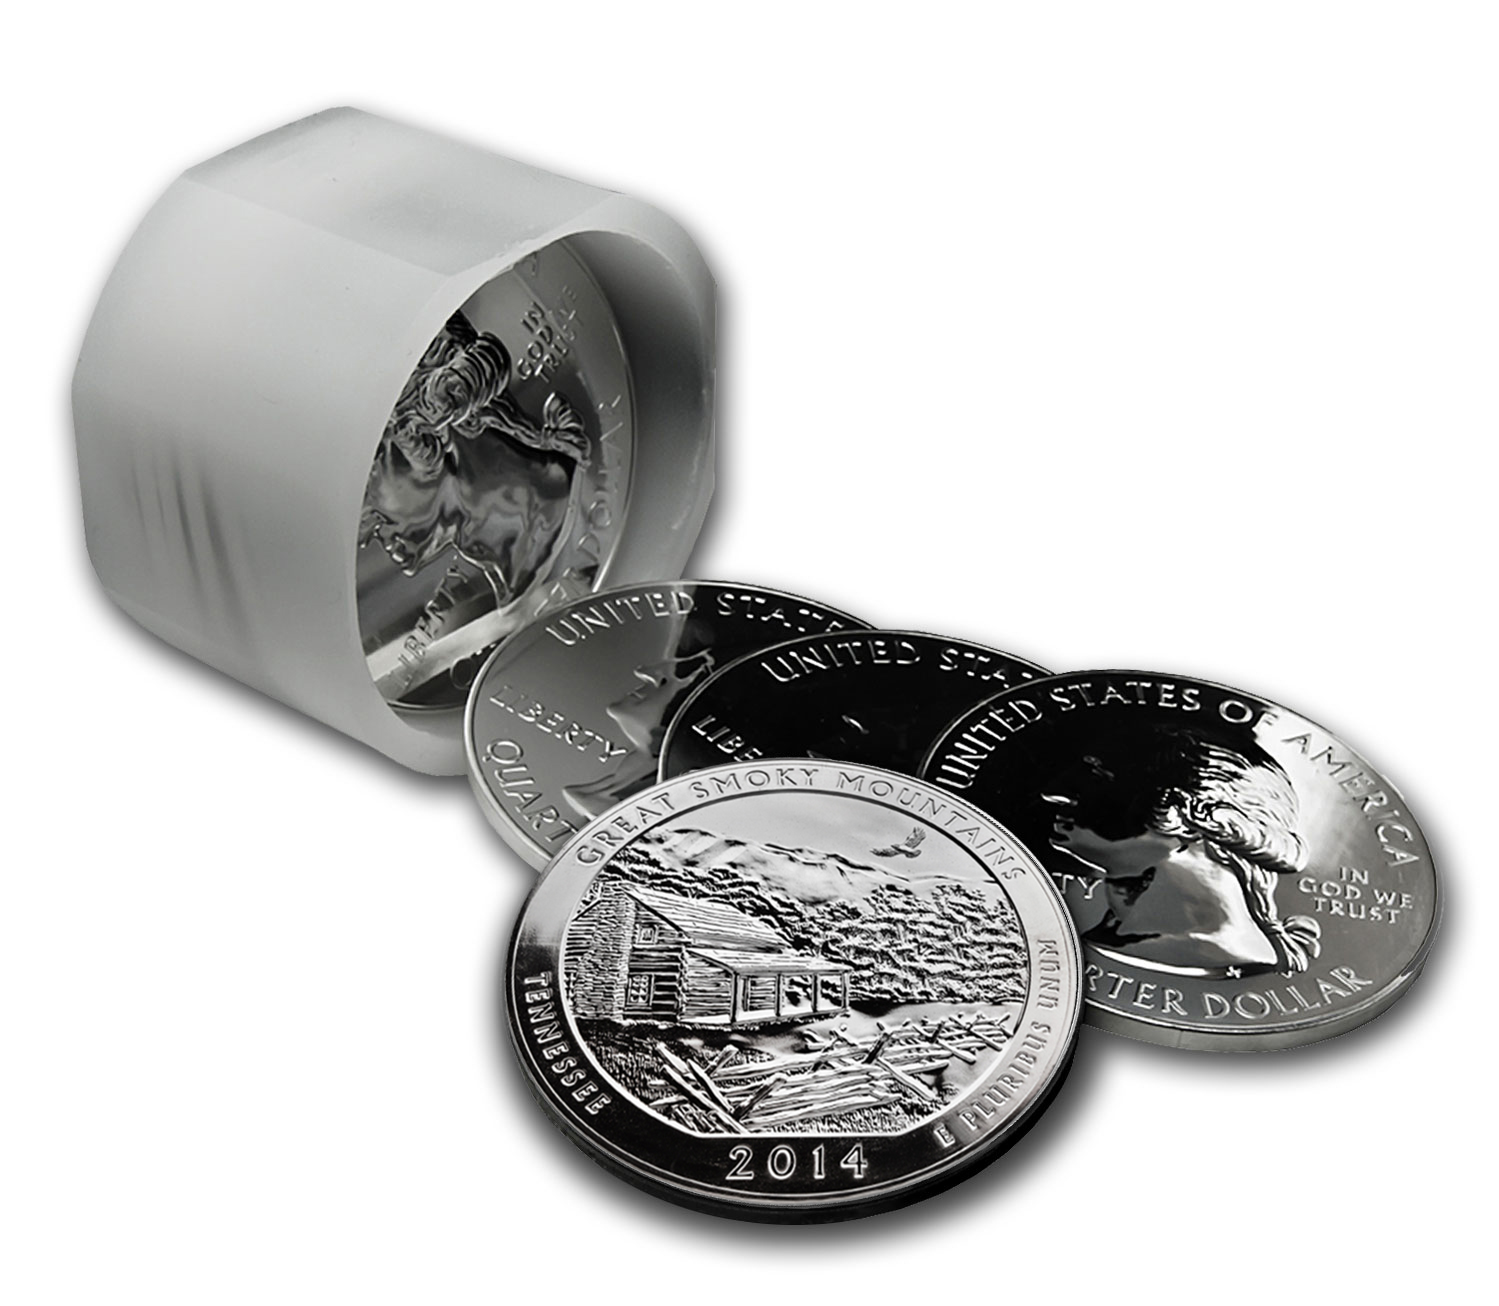 2014 5 oz Silver ATB Great Smoky Mtns.(10-coin MintDirect®)